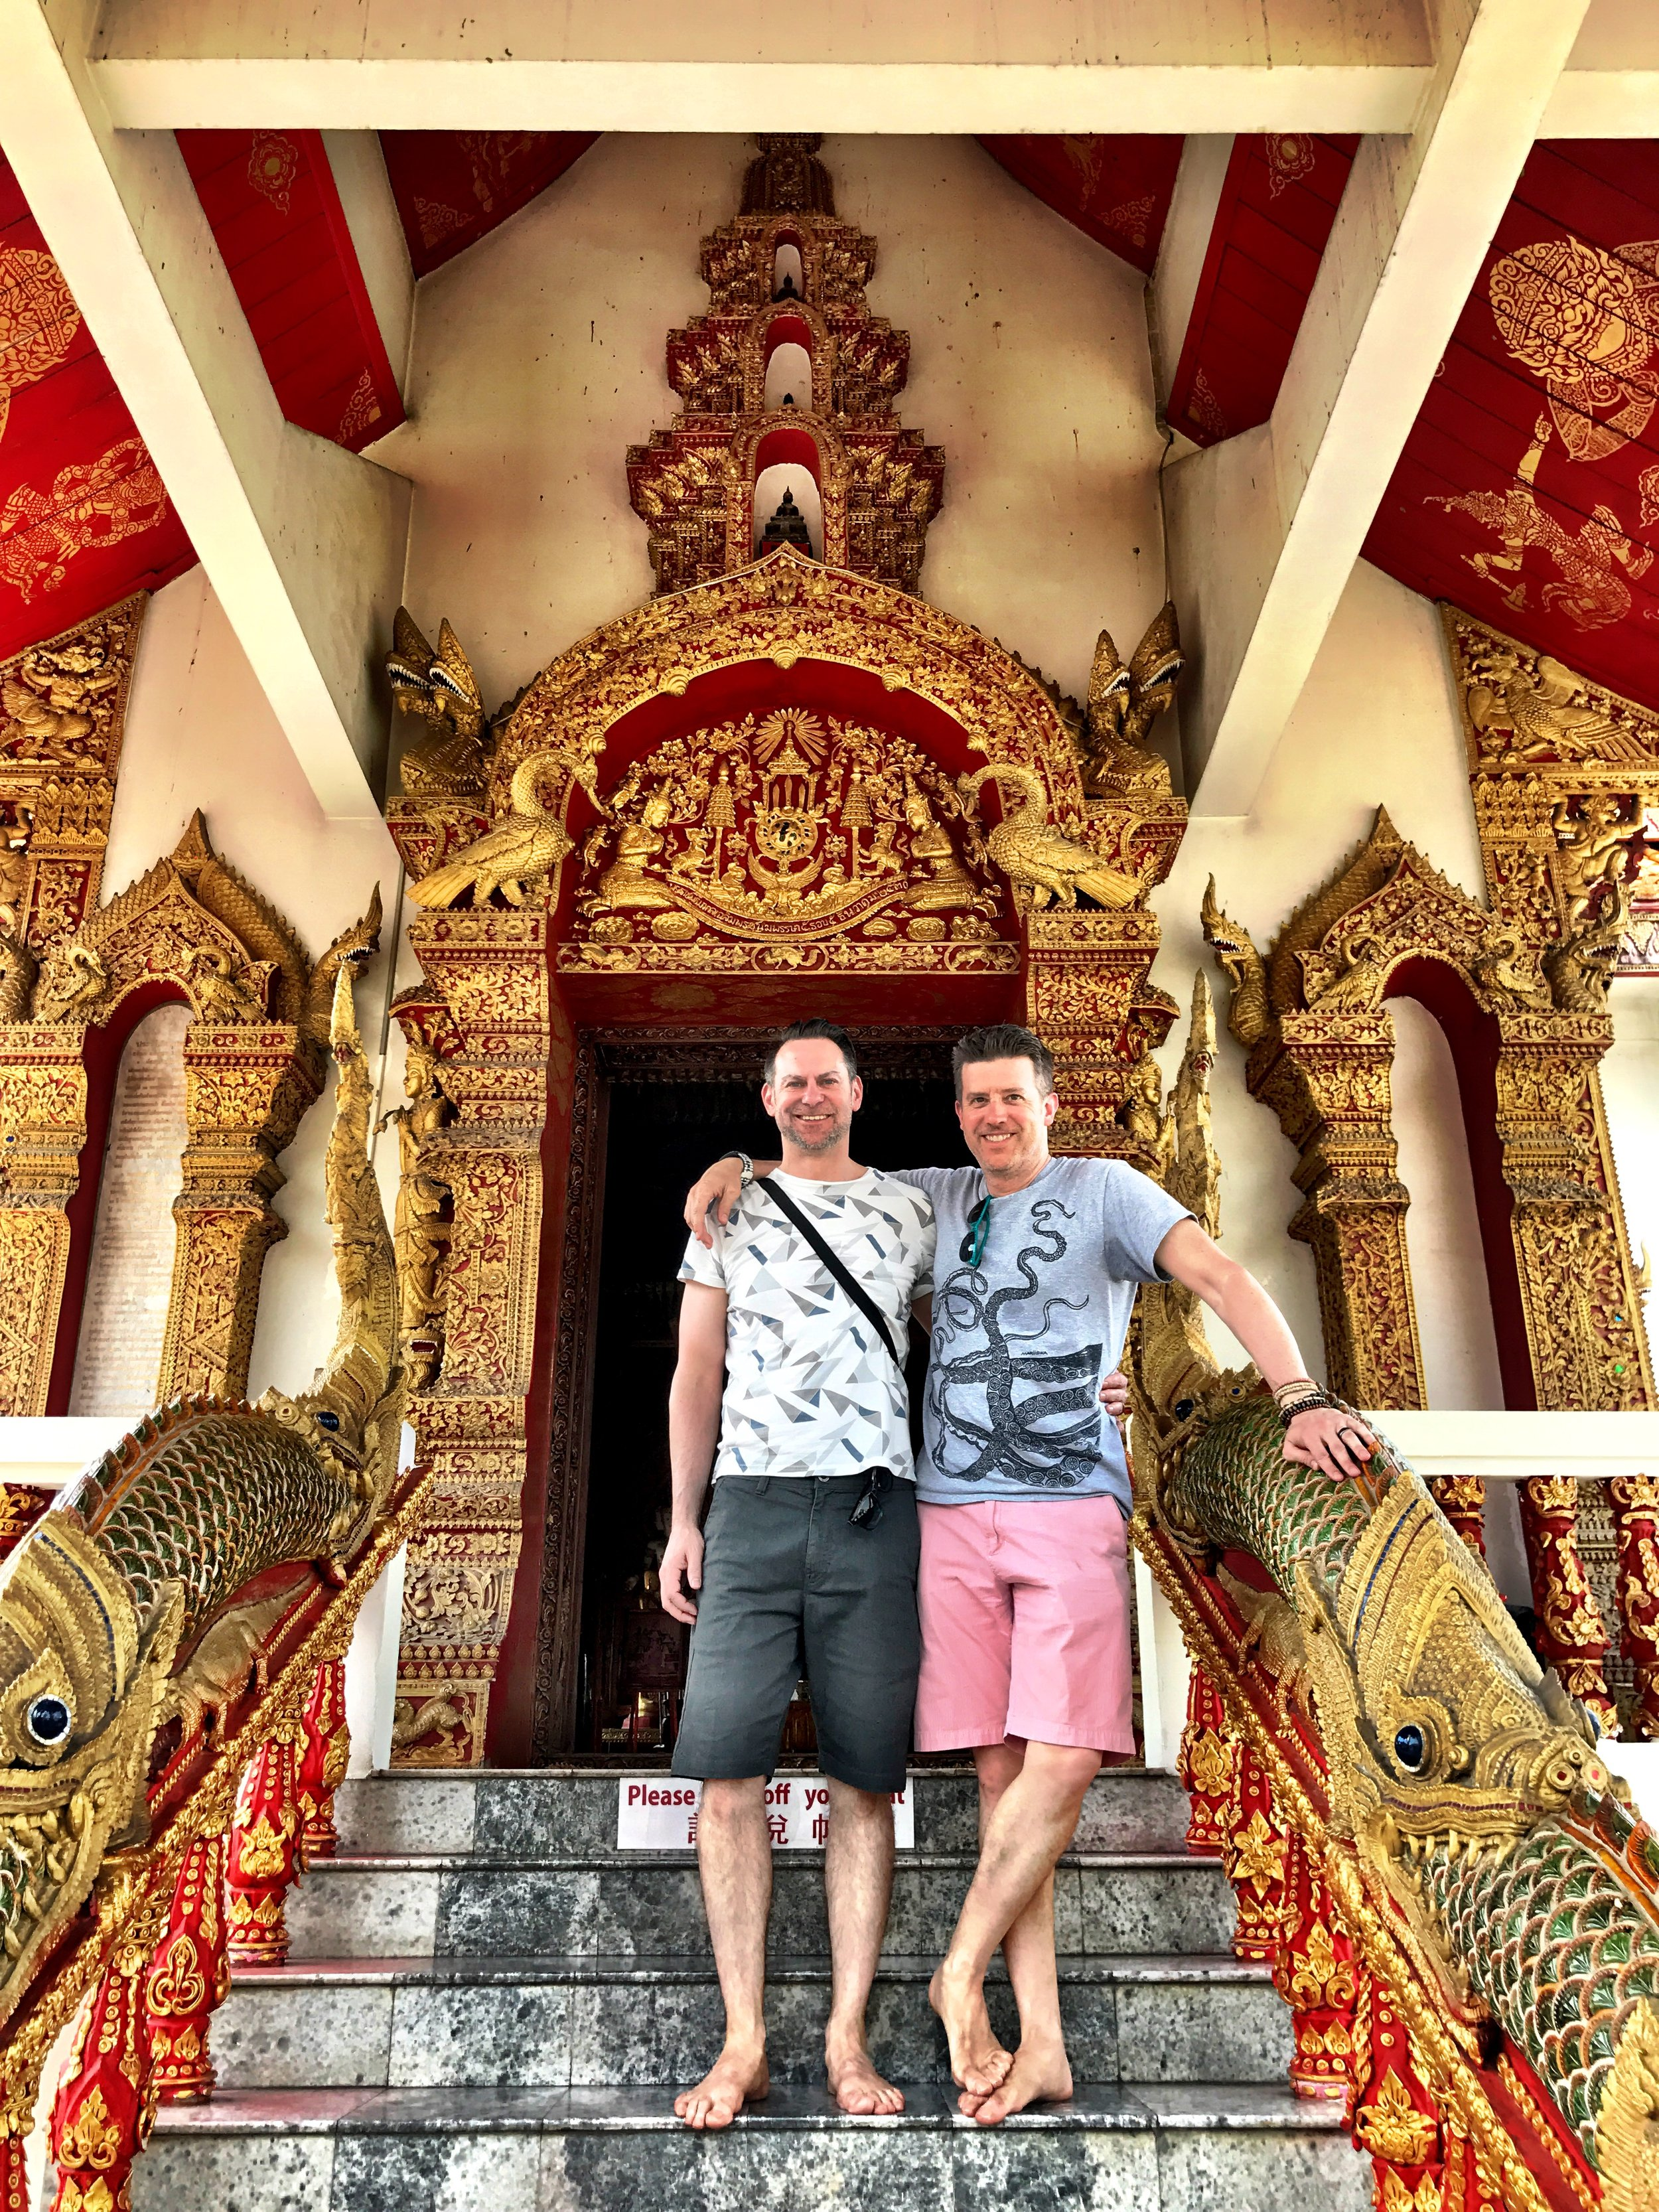 Duke and Wally on the steps of the Dhamma Hall at Wat Bupphrama, resplendent in deep red with elaborate gold details